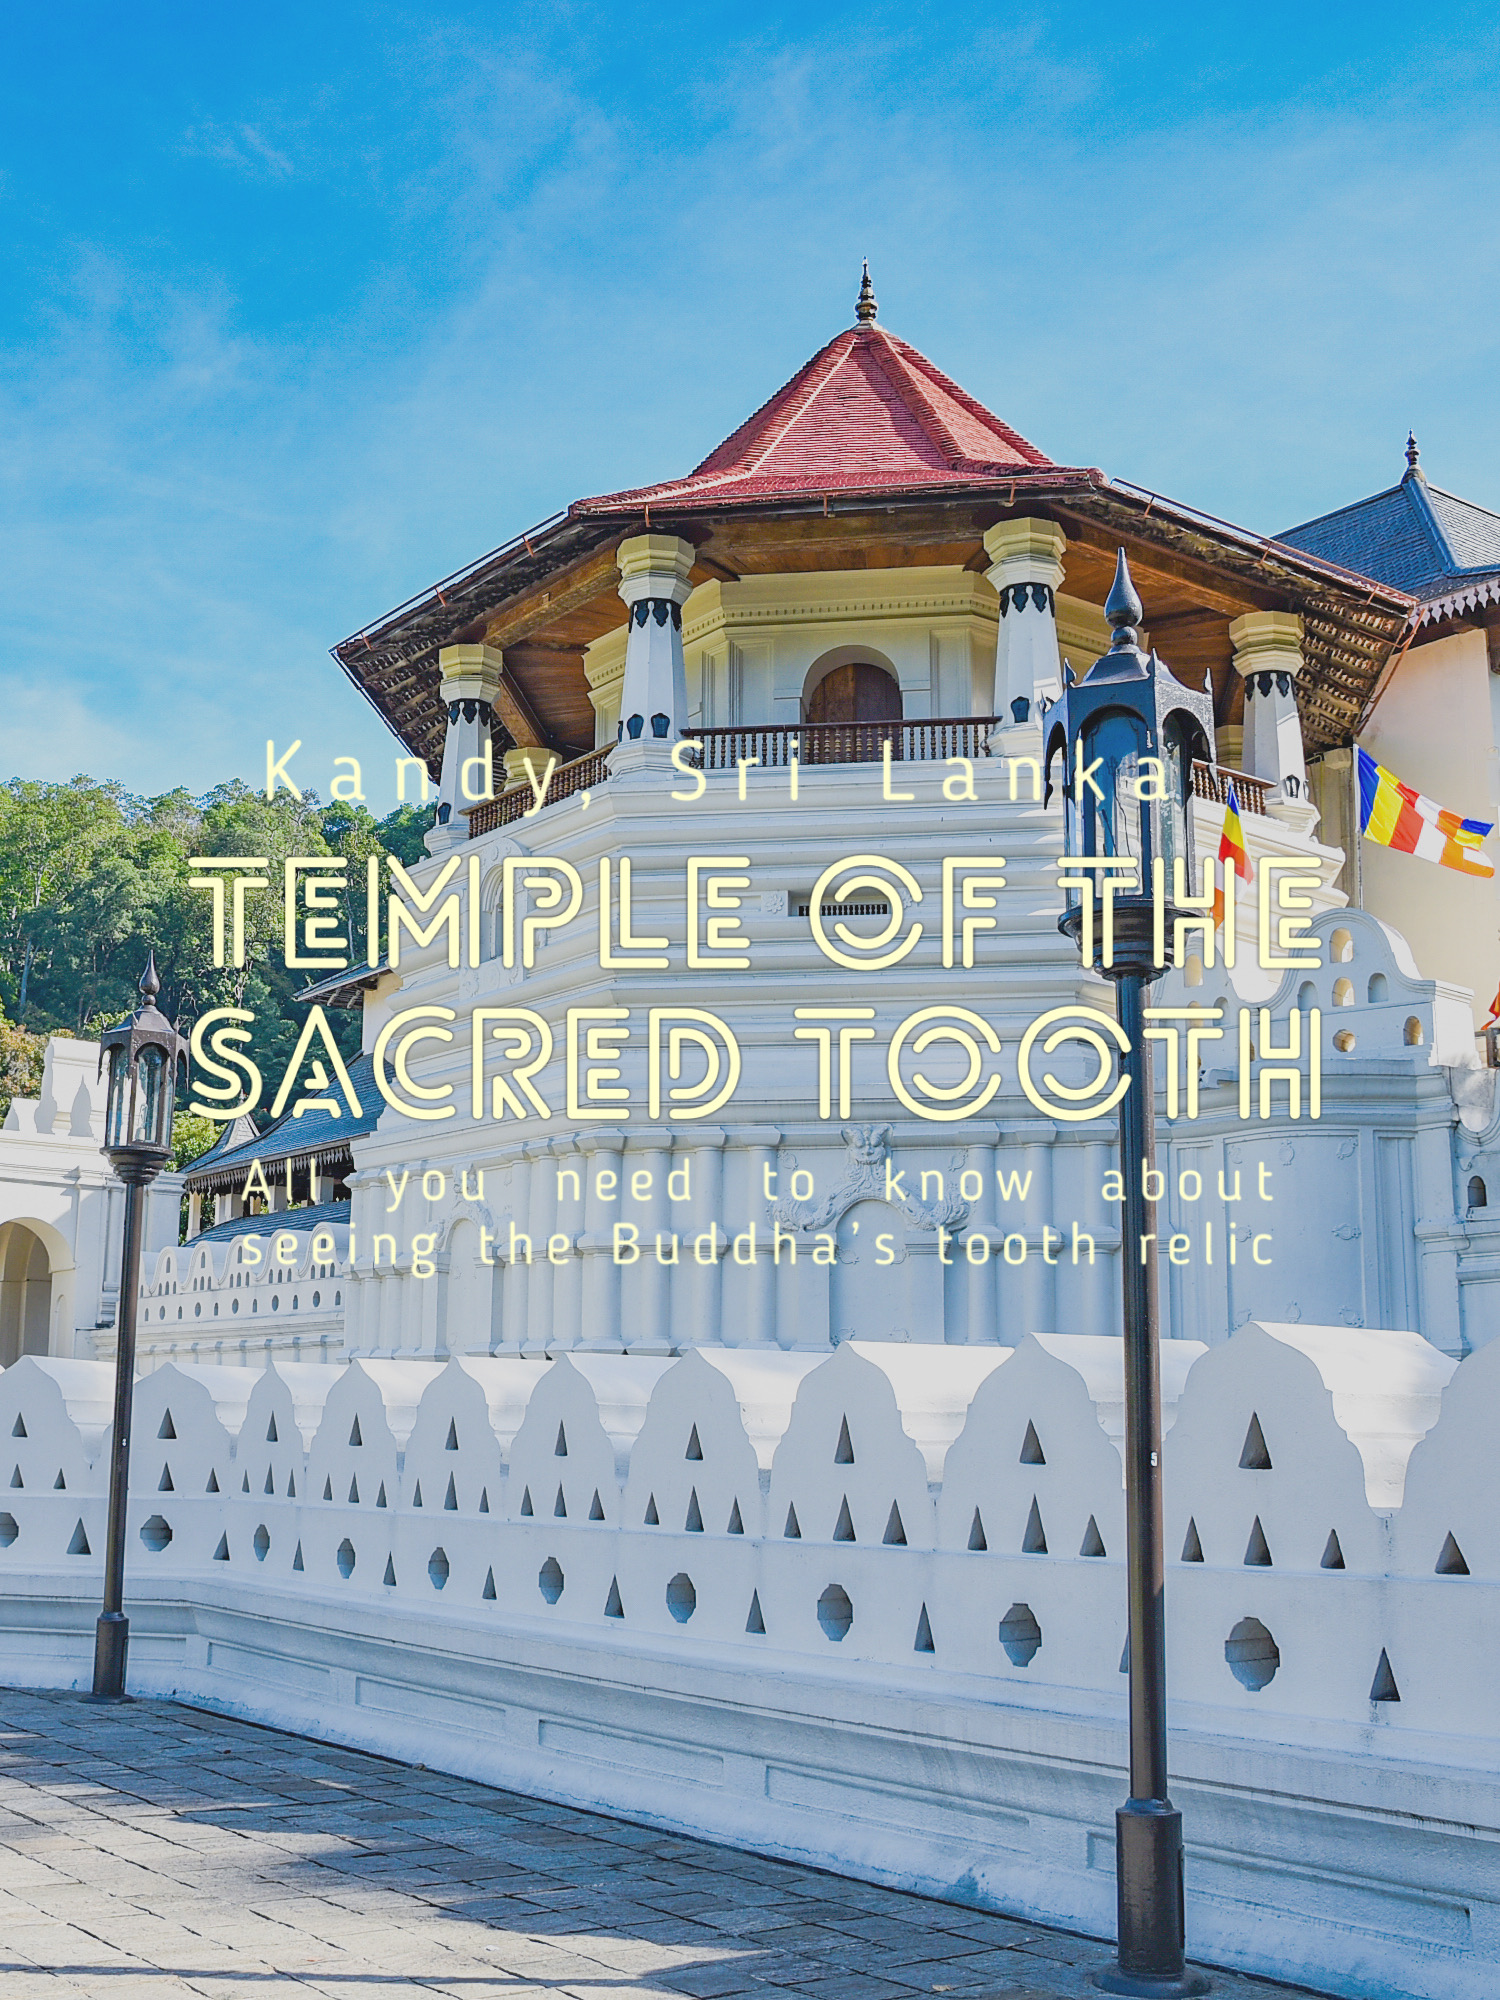 Kandy: A Practical Guide to the Temple of the Sacred Tooth